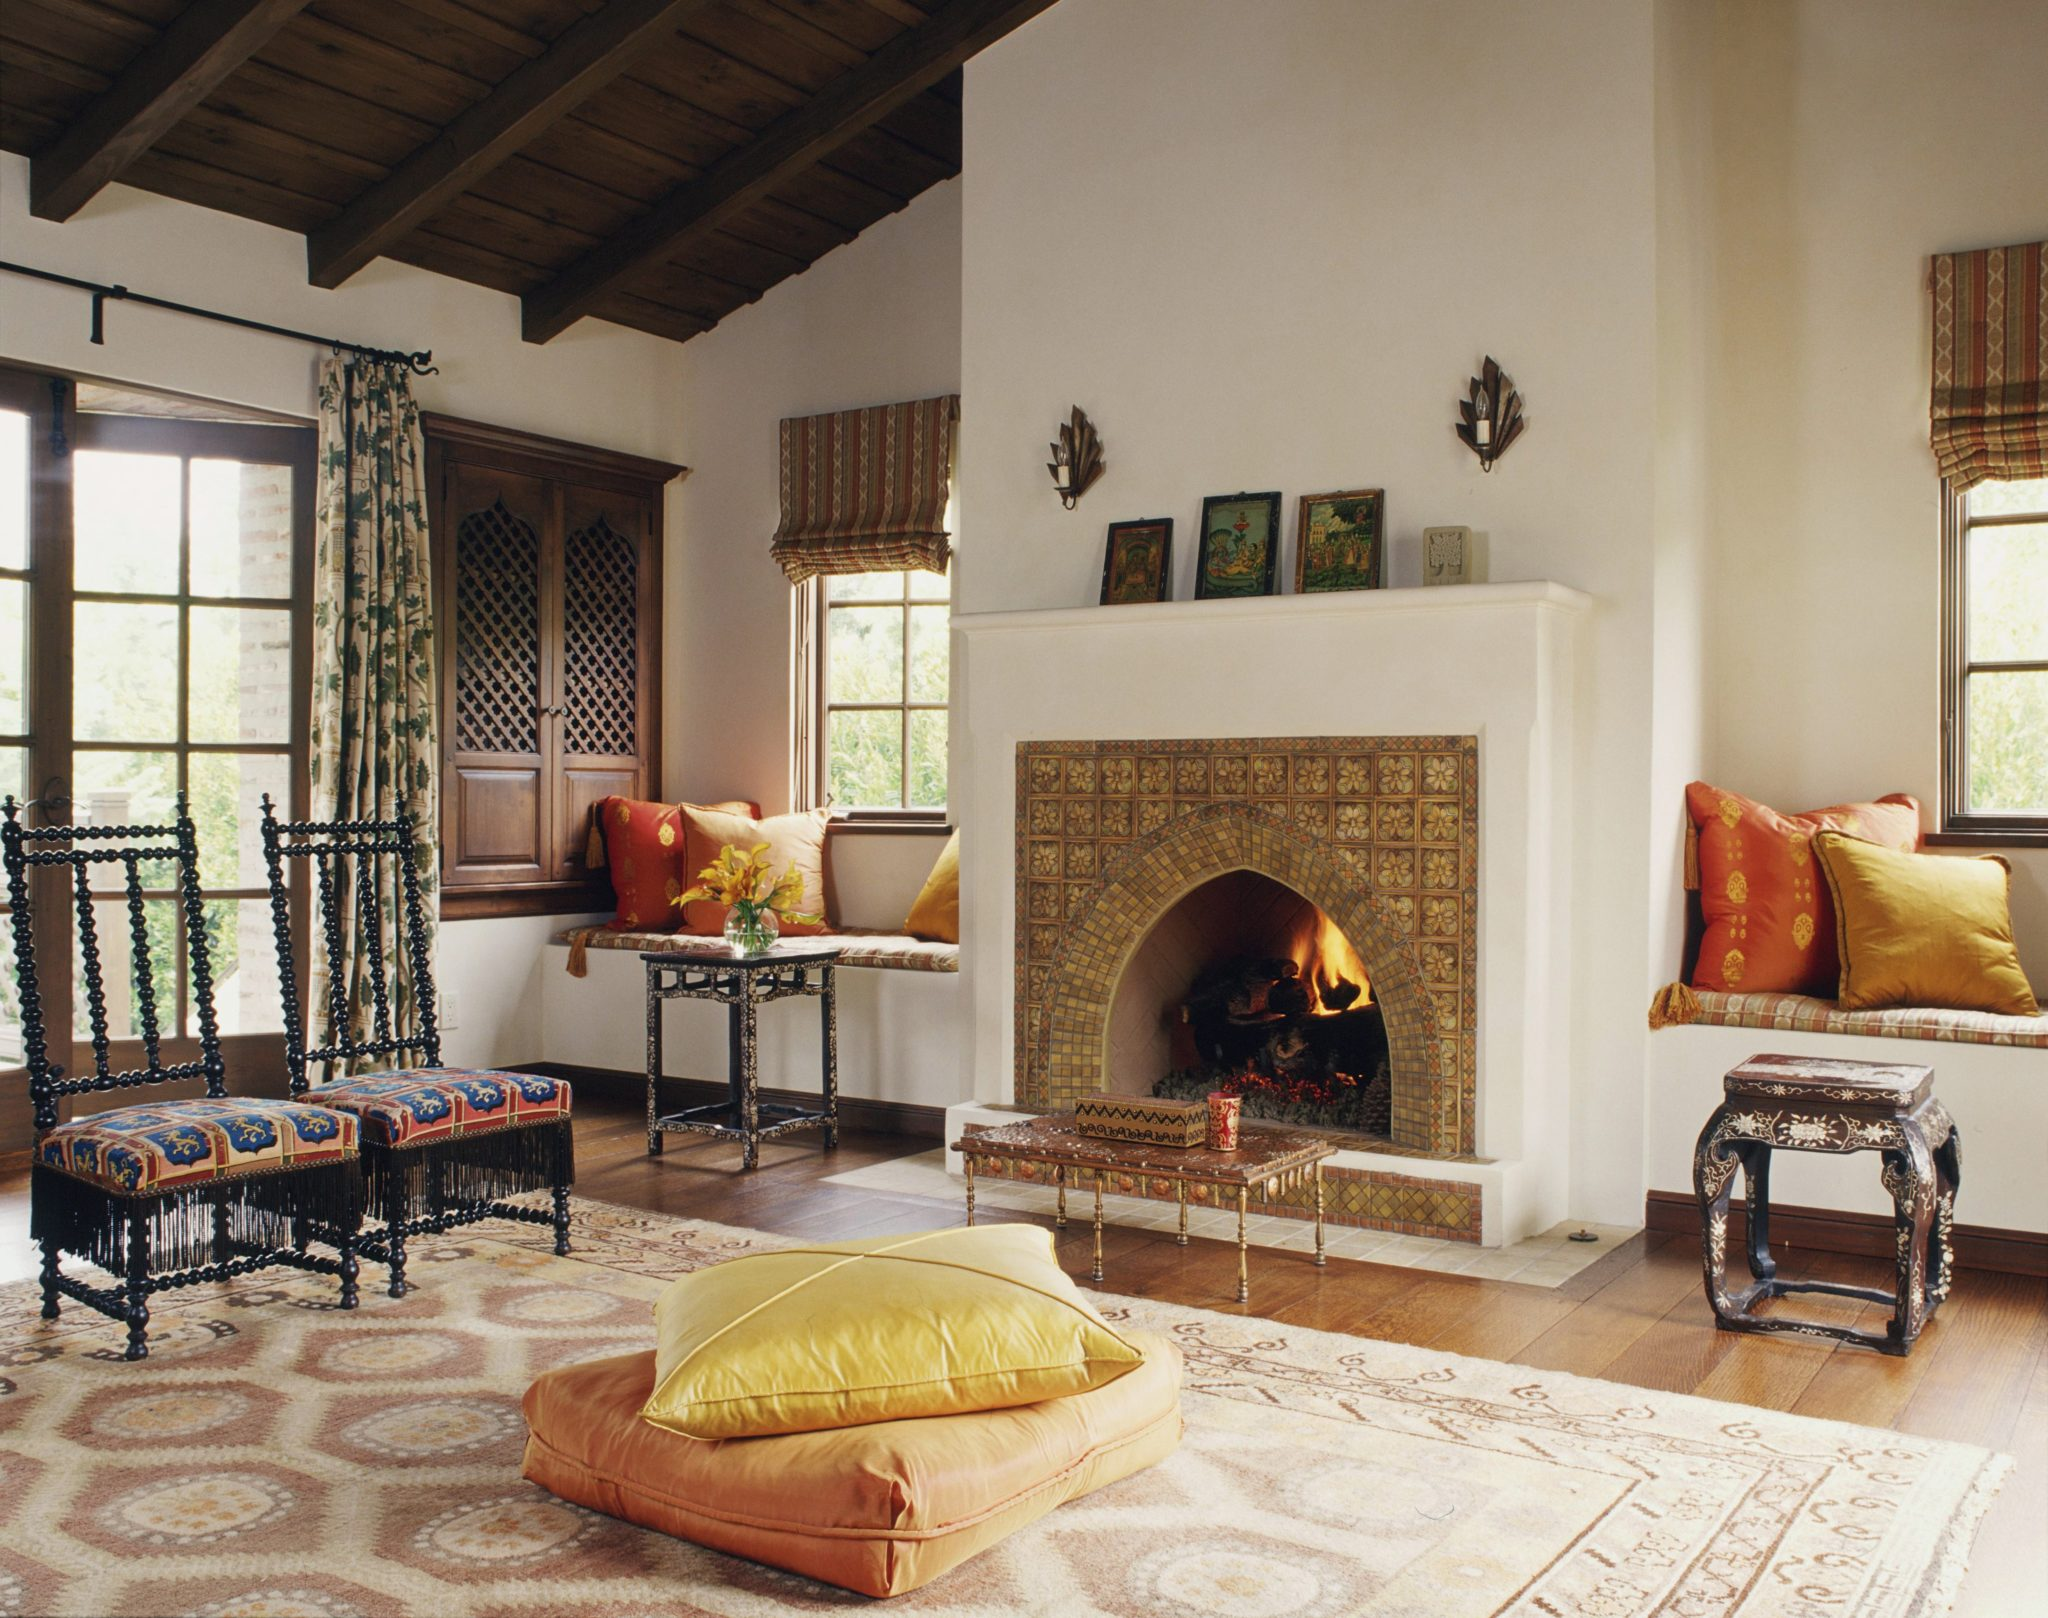 Sitting and meditation room with Moroccan details designed by Thomas Callaway Associates, Inc.